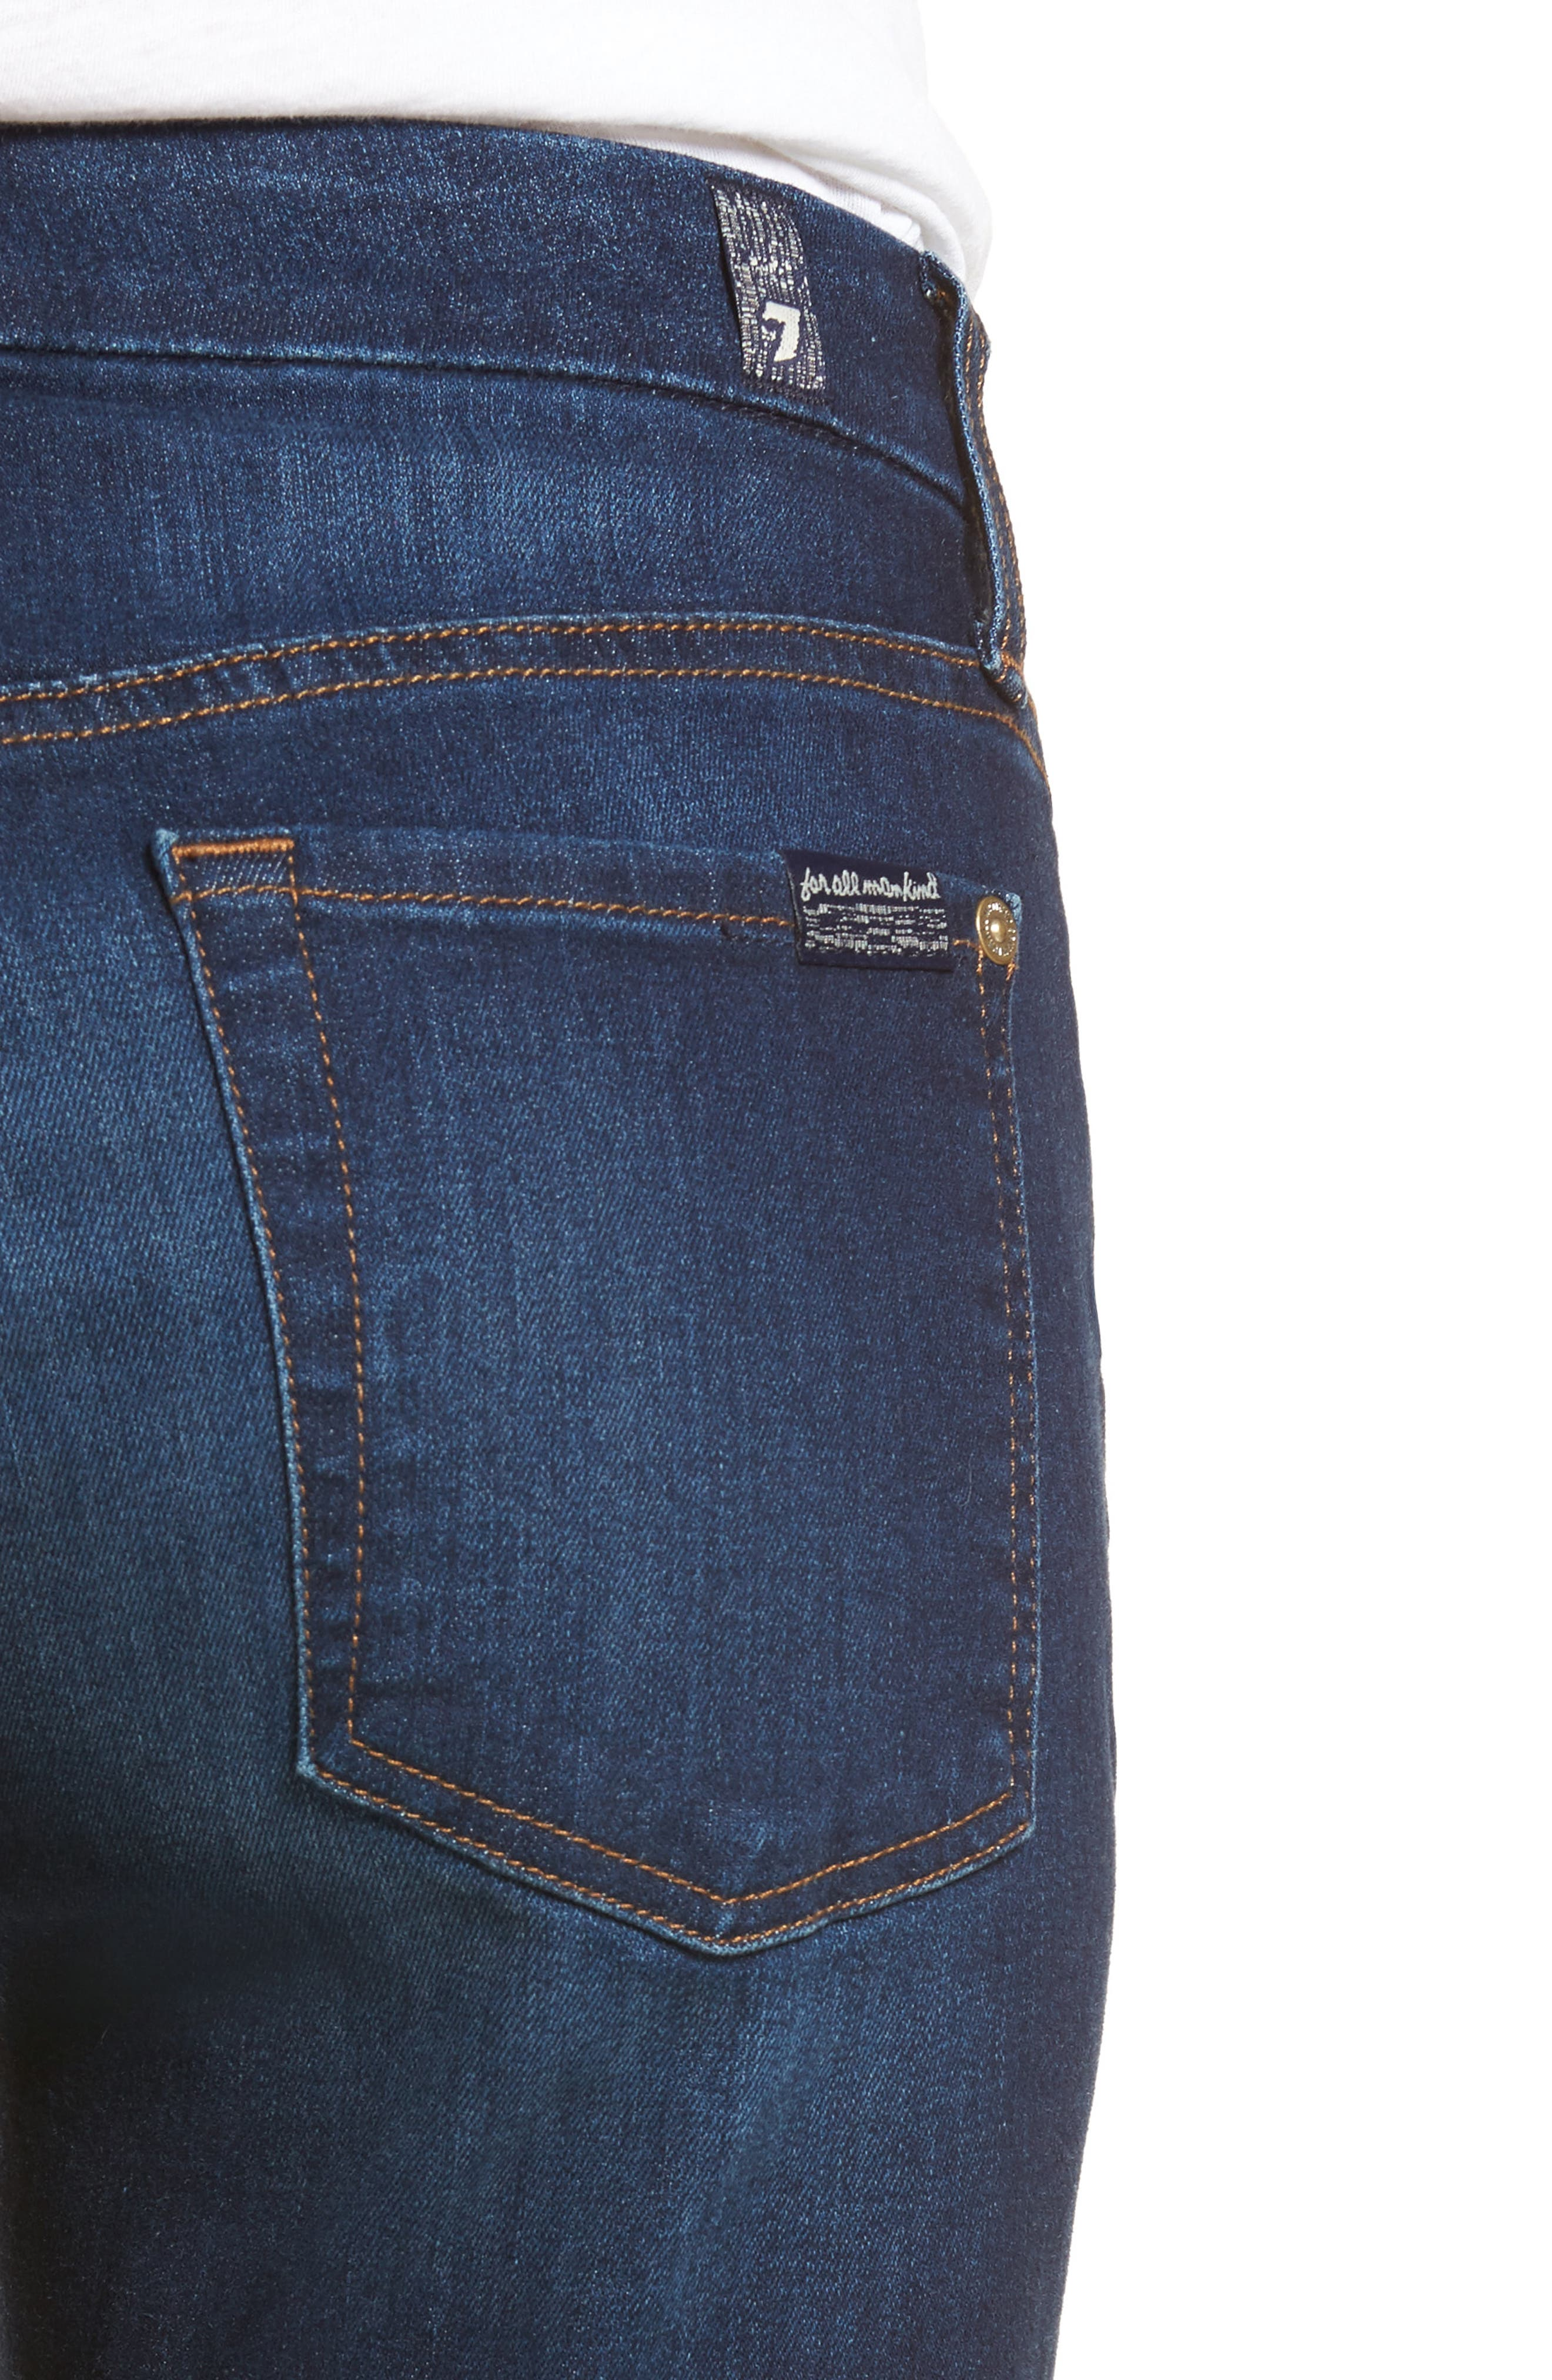 7 FOR ALL MANKIND<SUP>®</SUP>, b(air) High Waist Skinny Jeans, Alternate thumbnail 5, color, MORENO